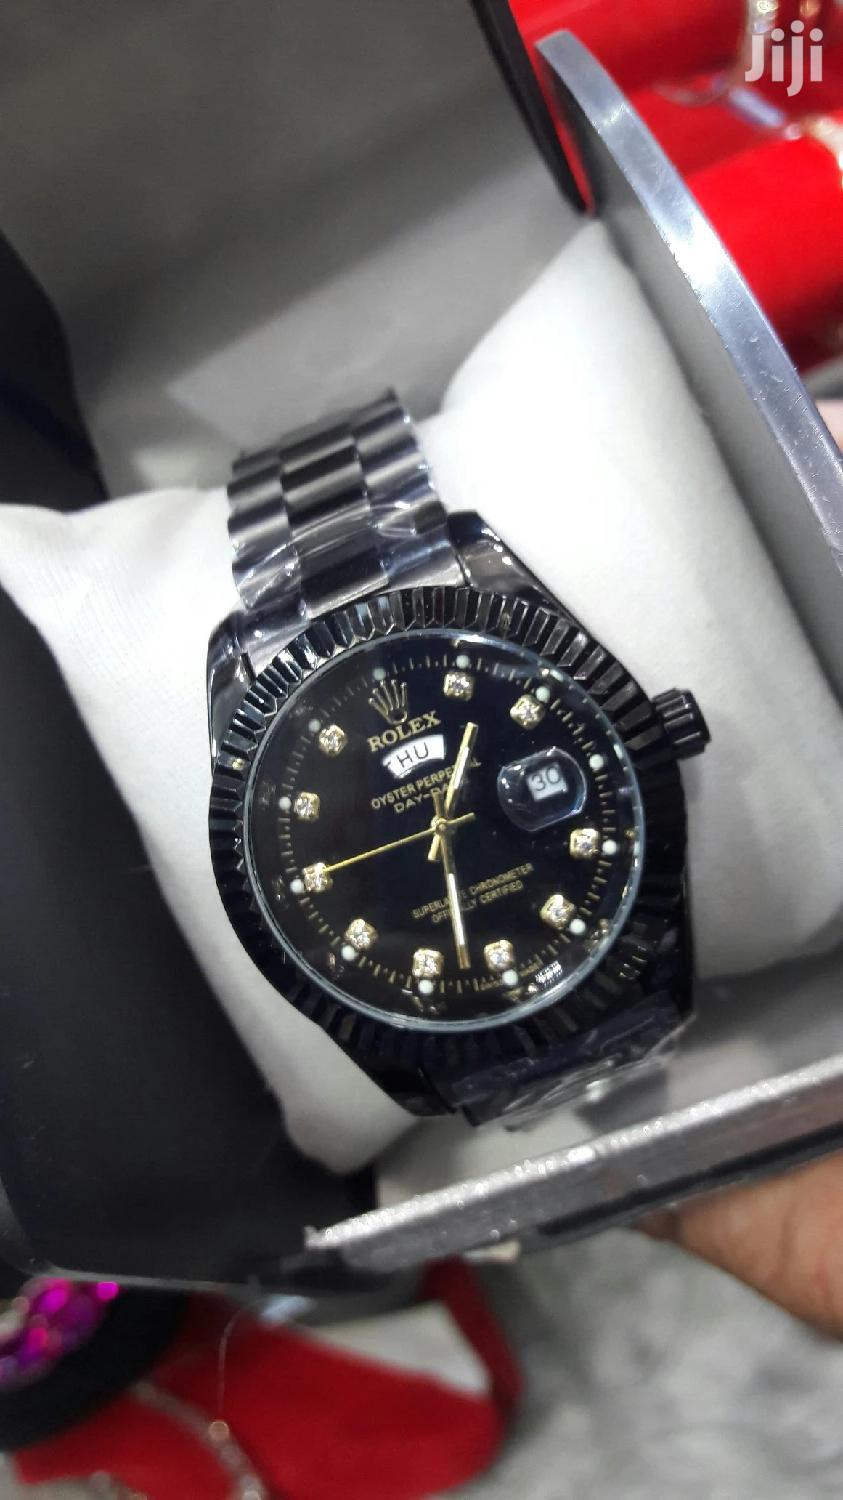 Orignal Watches | Watches for sale in Kampala, Central Region, Uganda